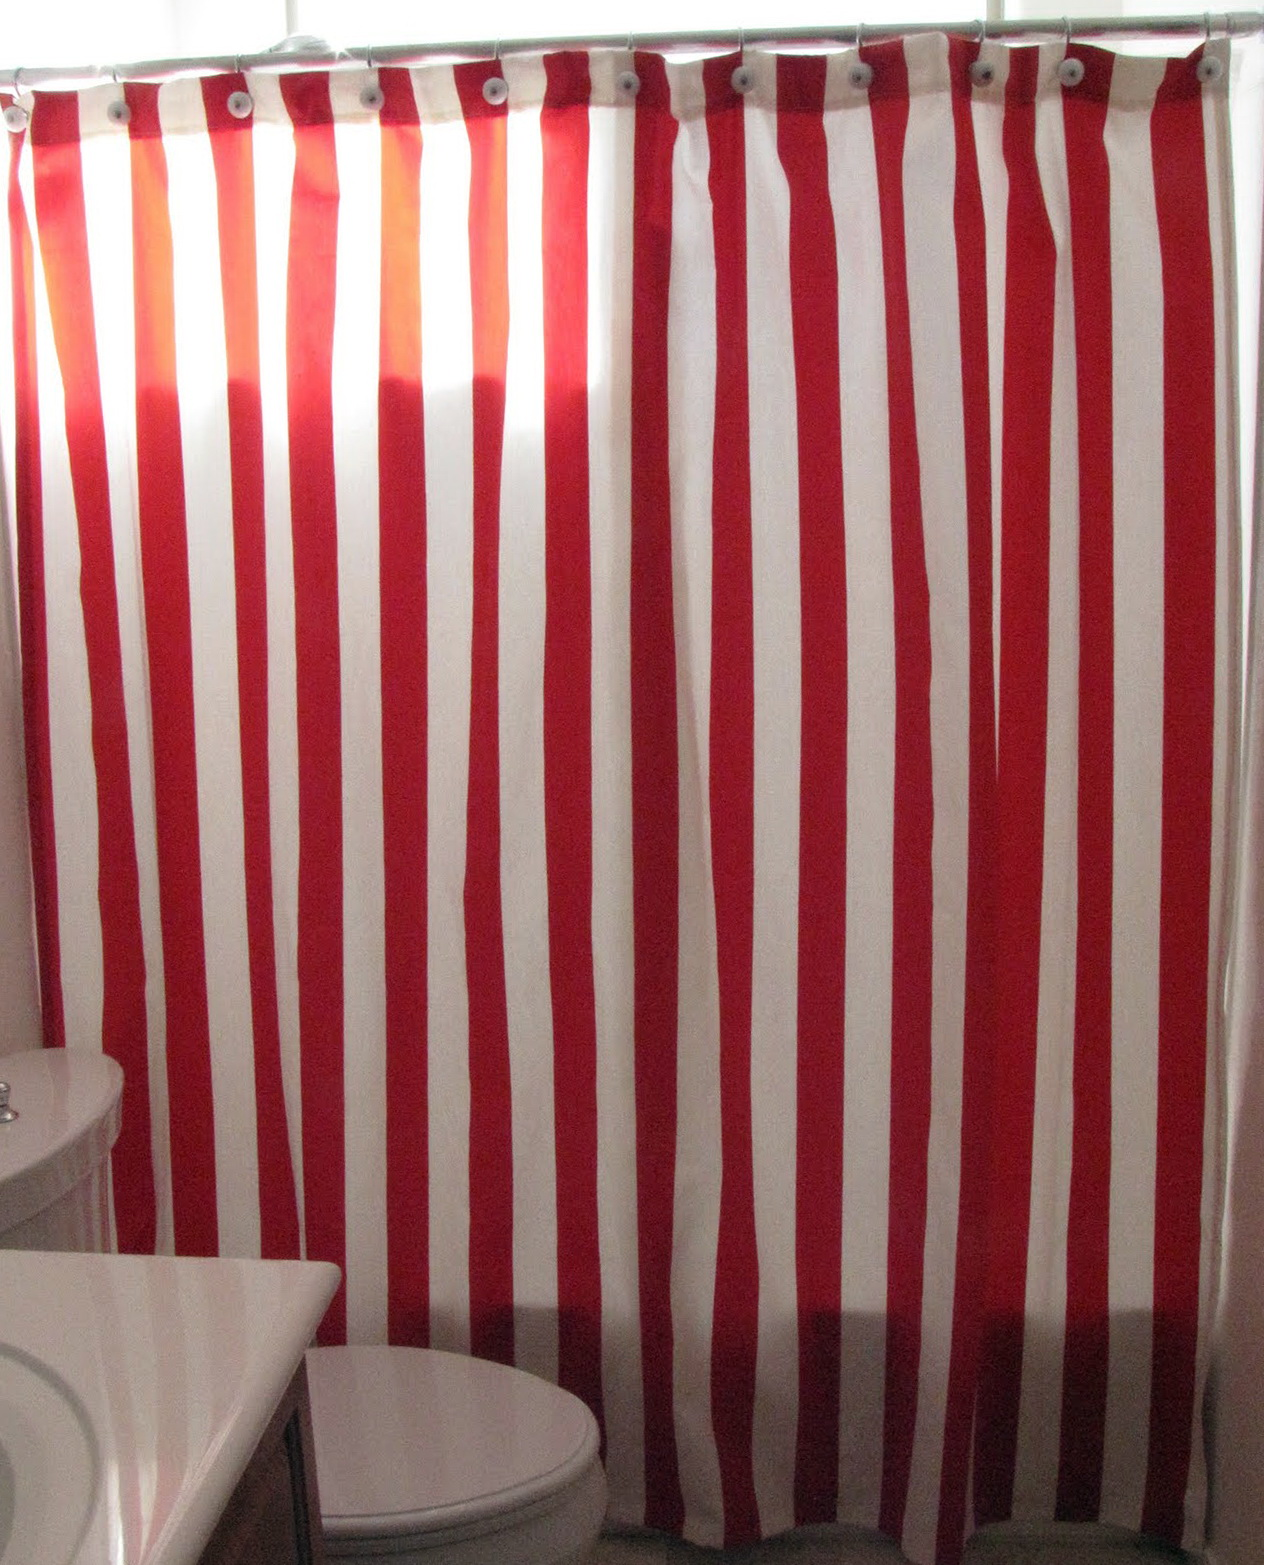 Red And White Striped Curtains Home Design Ideas